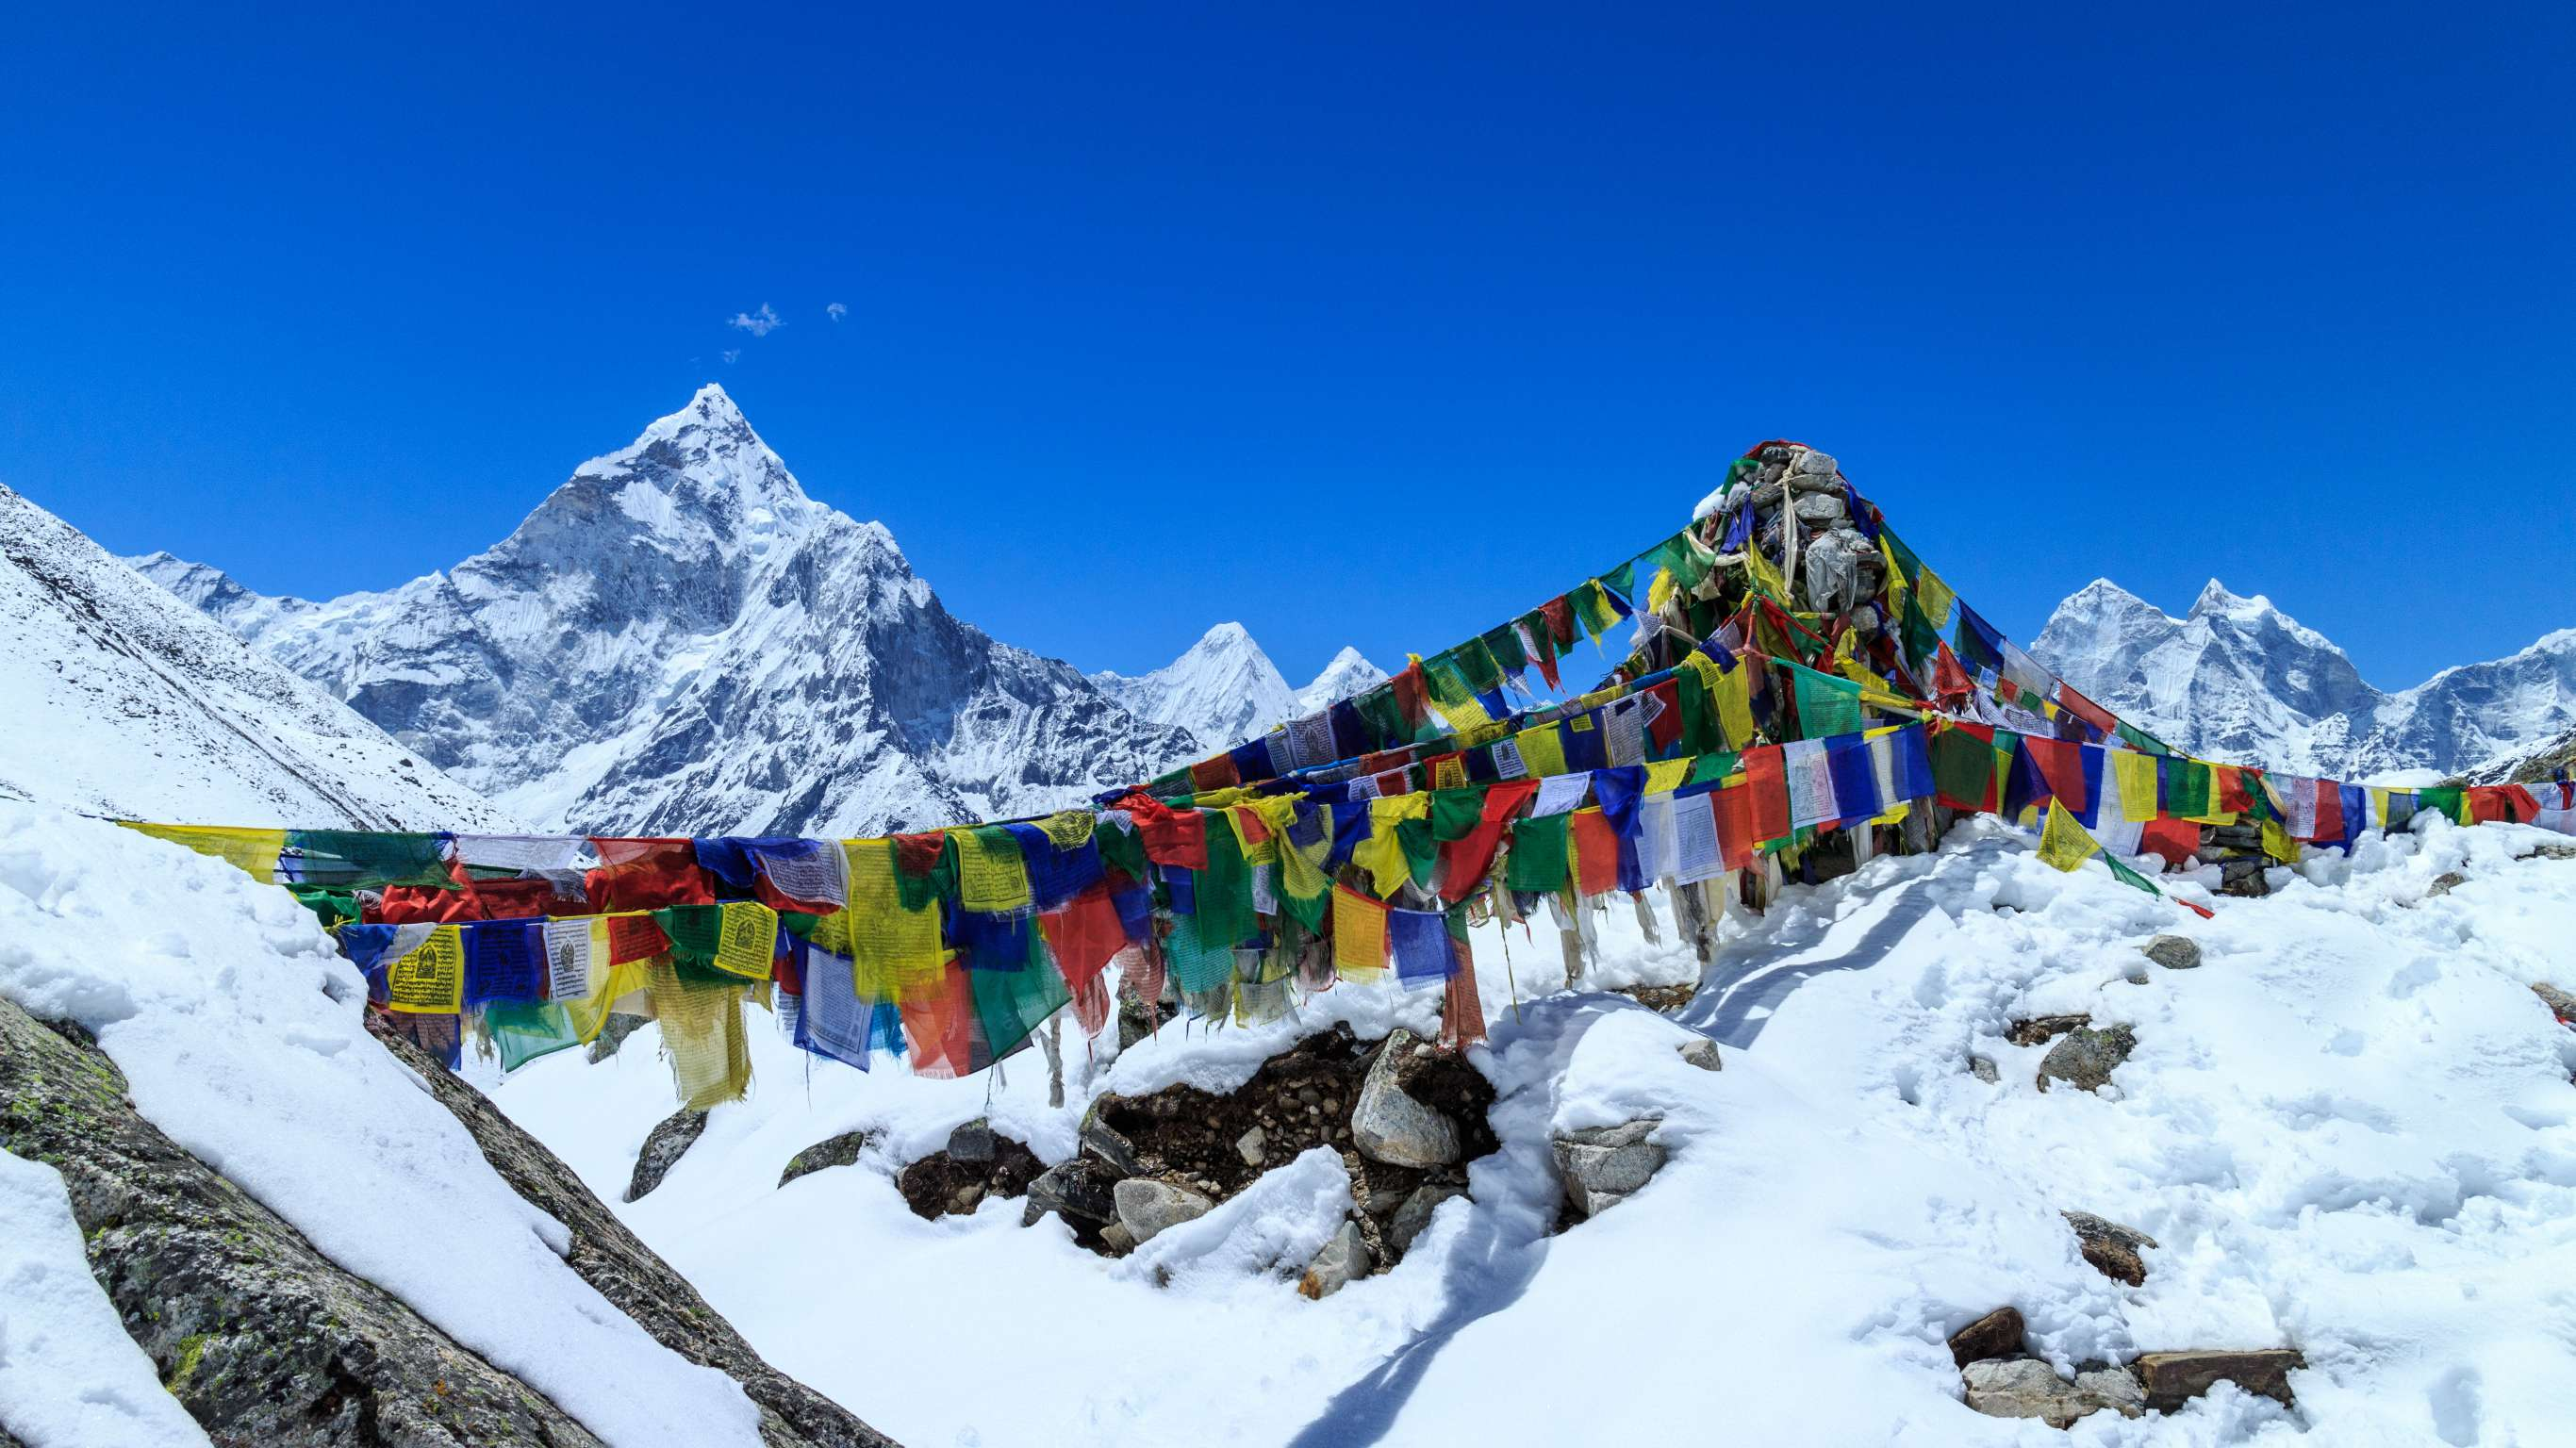 16-Day Everest Base Camp Adventure - Nepal Itinerary